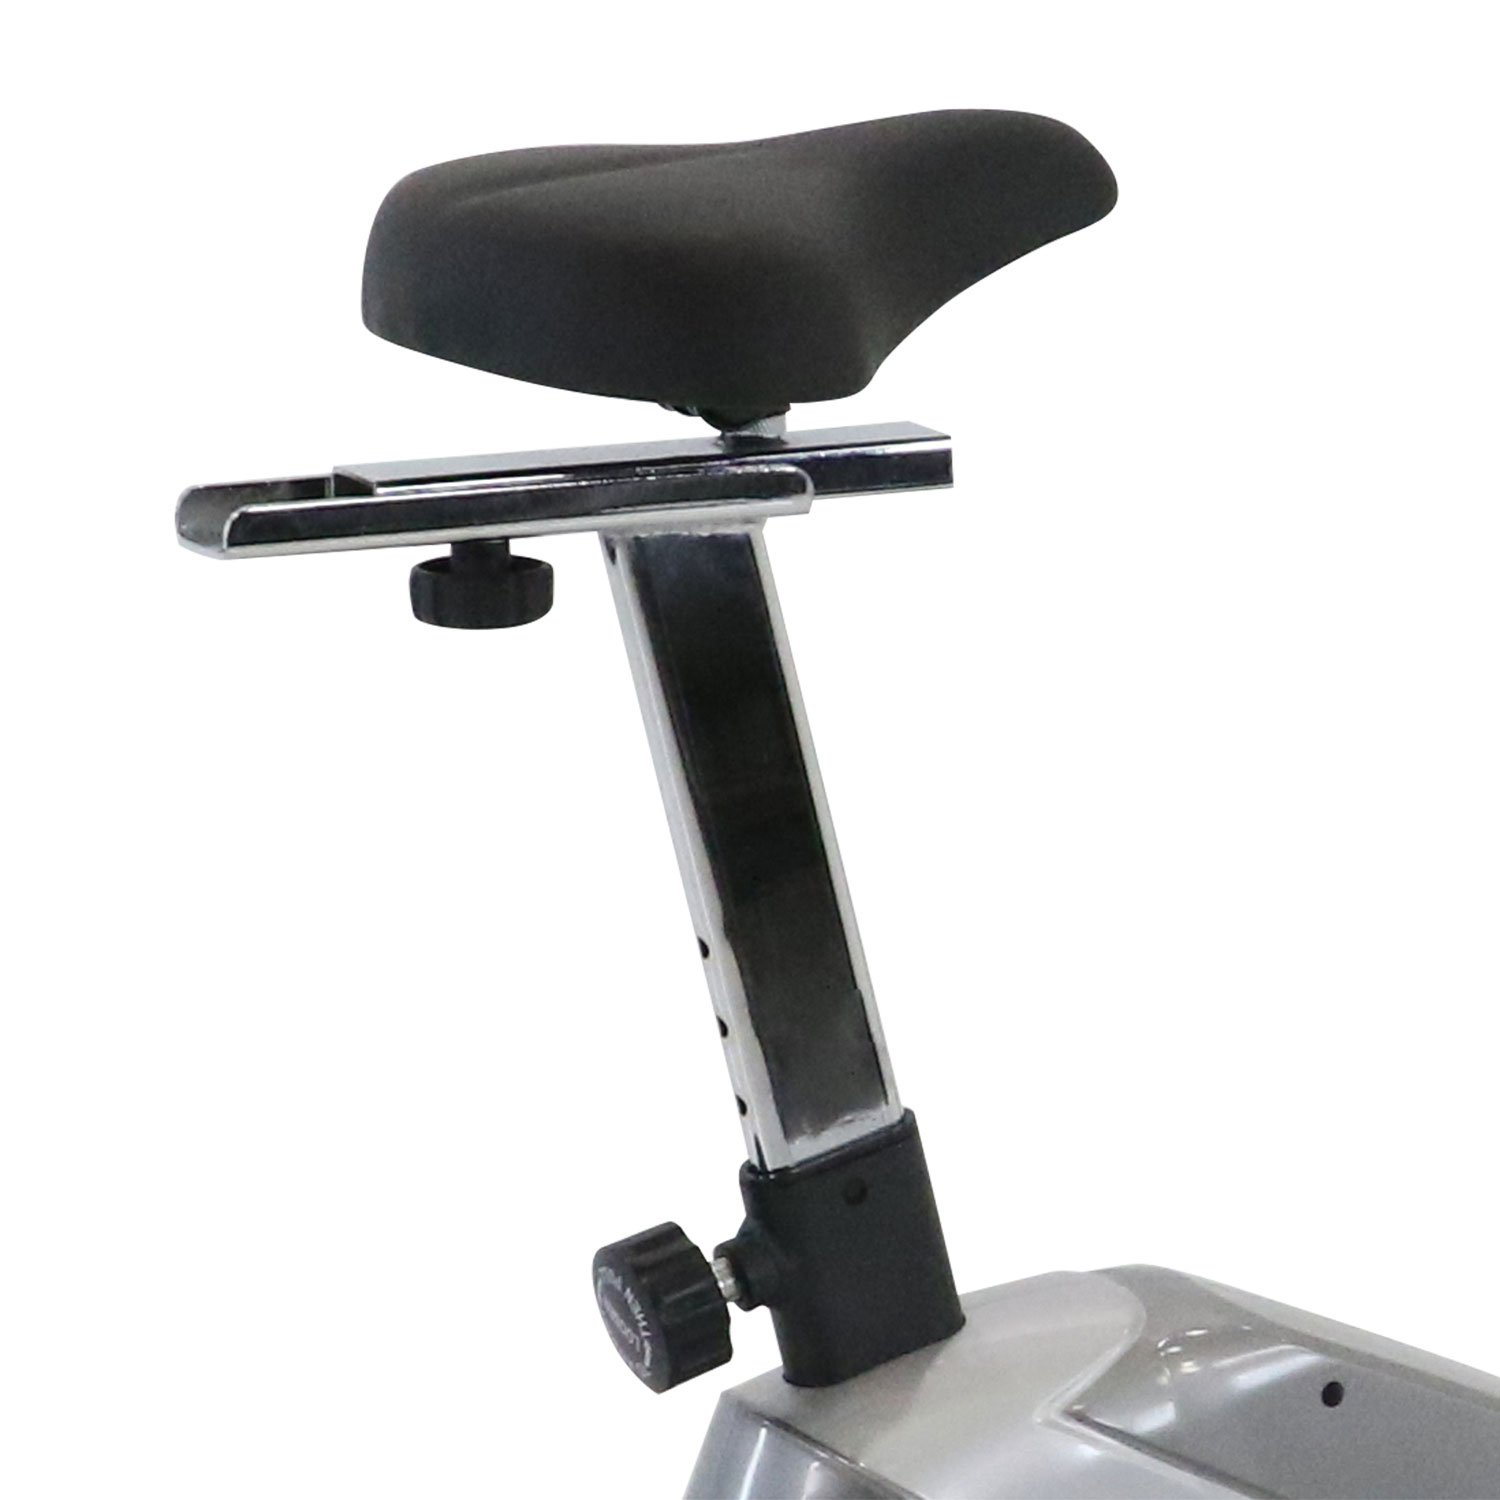 Amazon.com: Bladez Fitness U300 II vertical Bike: Sports ...